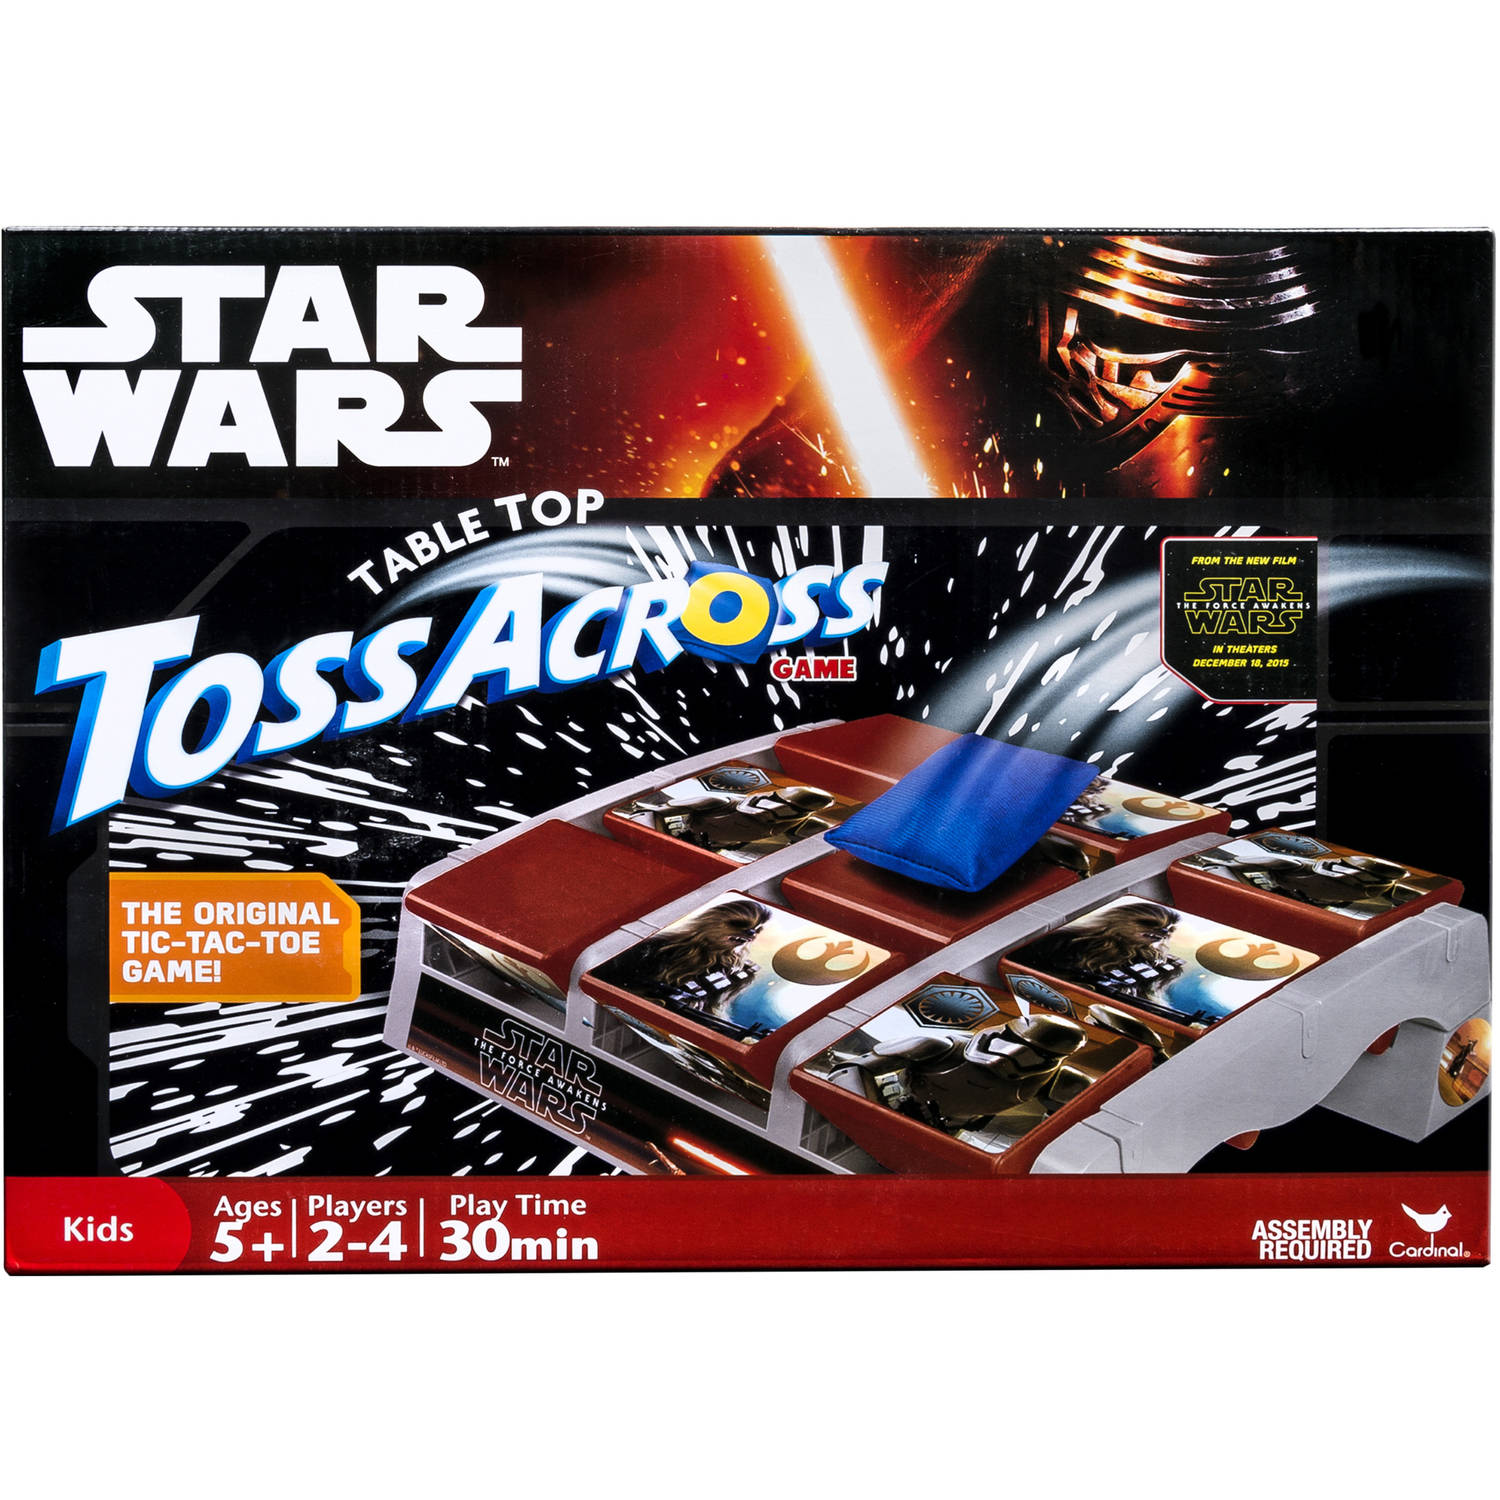 Star Wars Table Top Toss Across Game